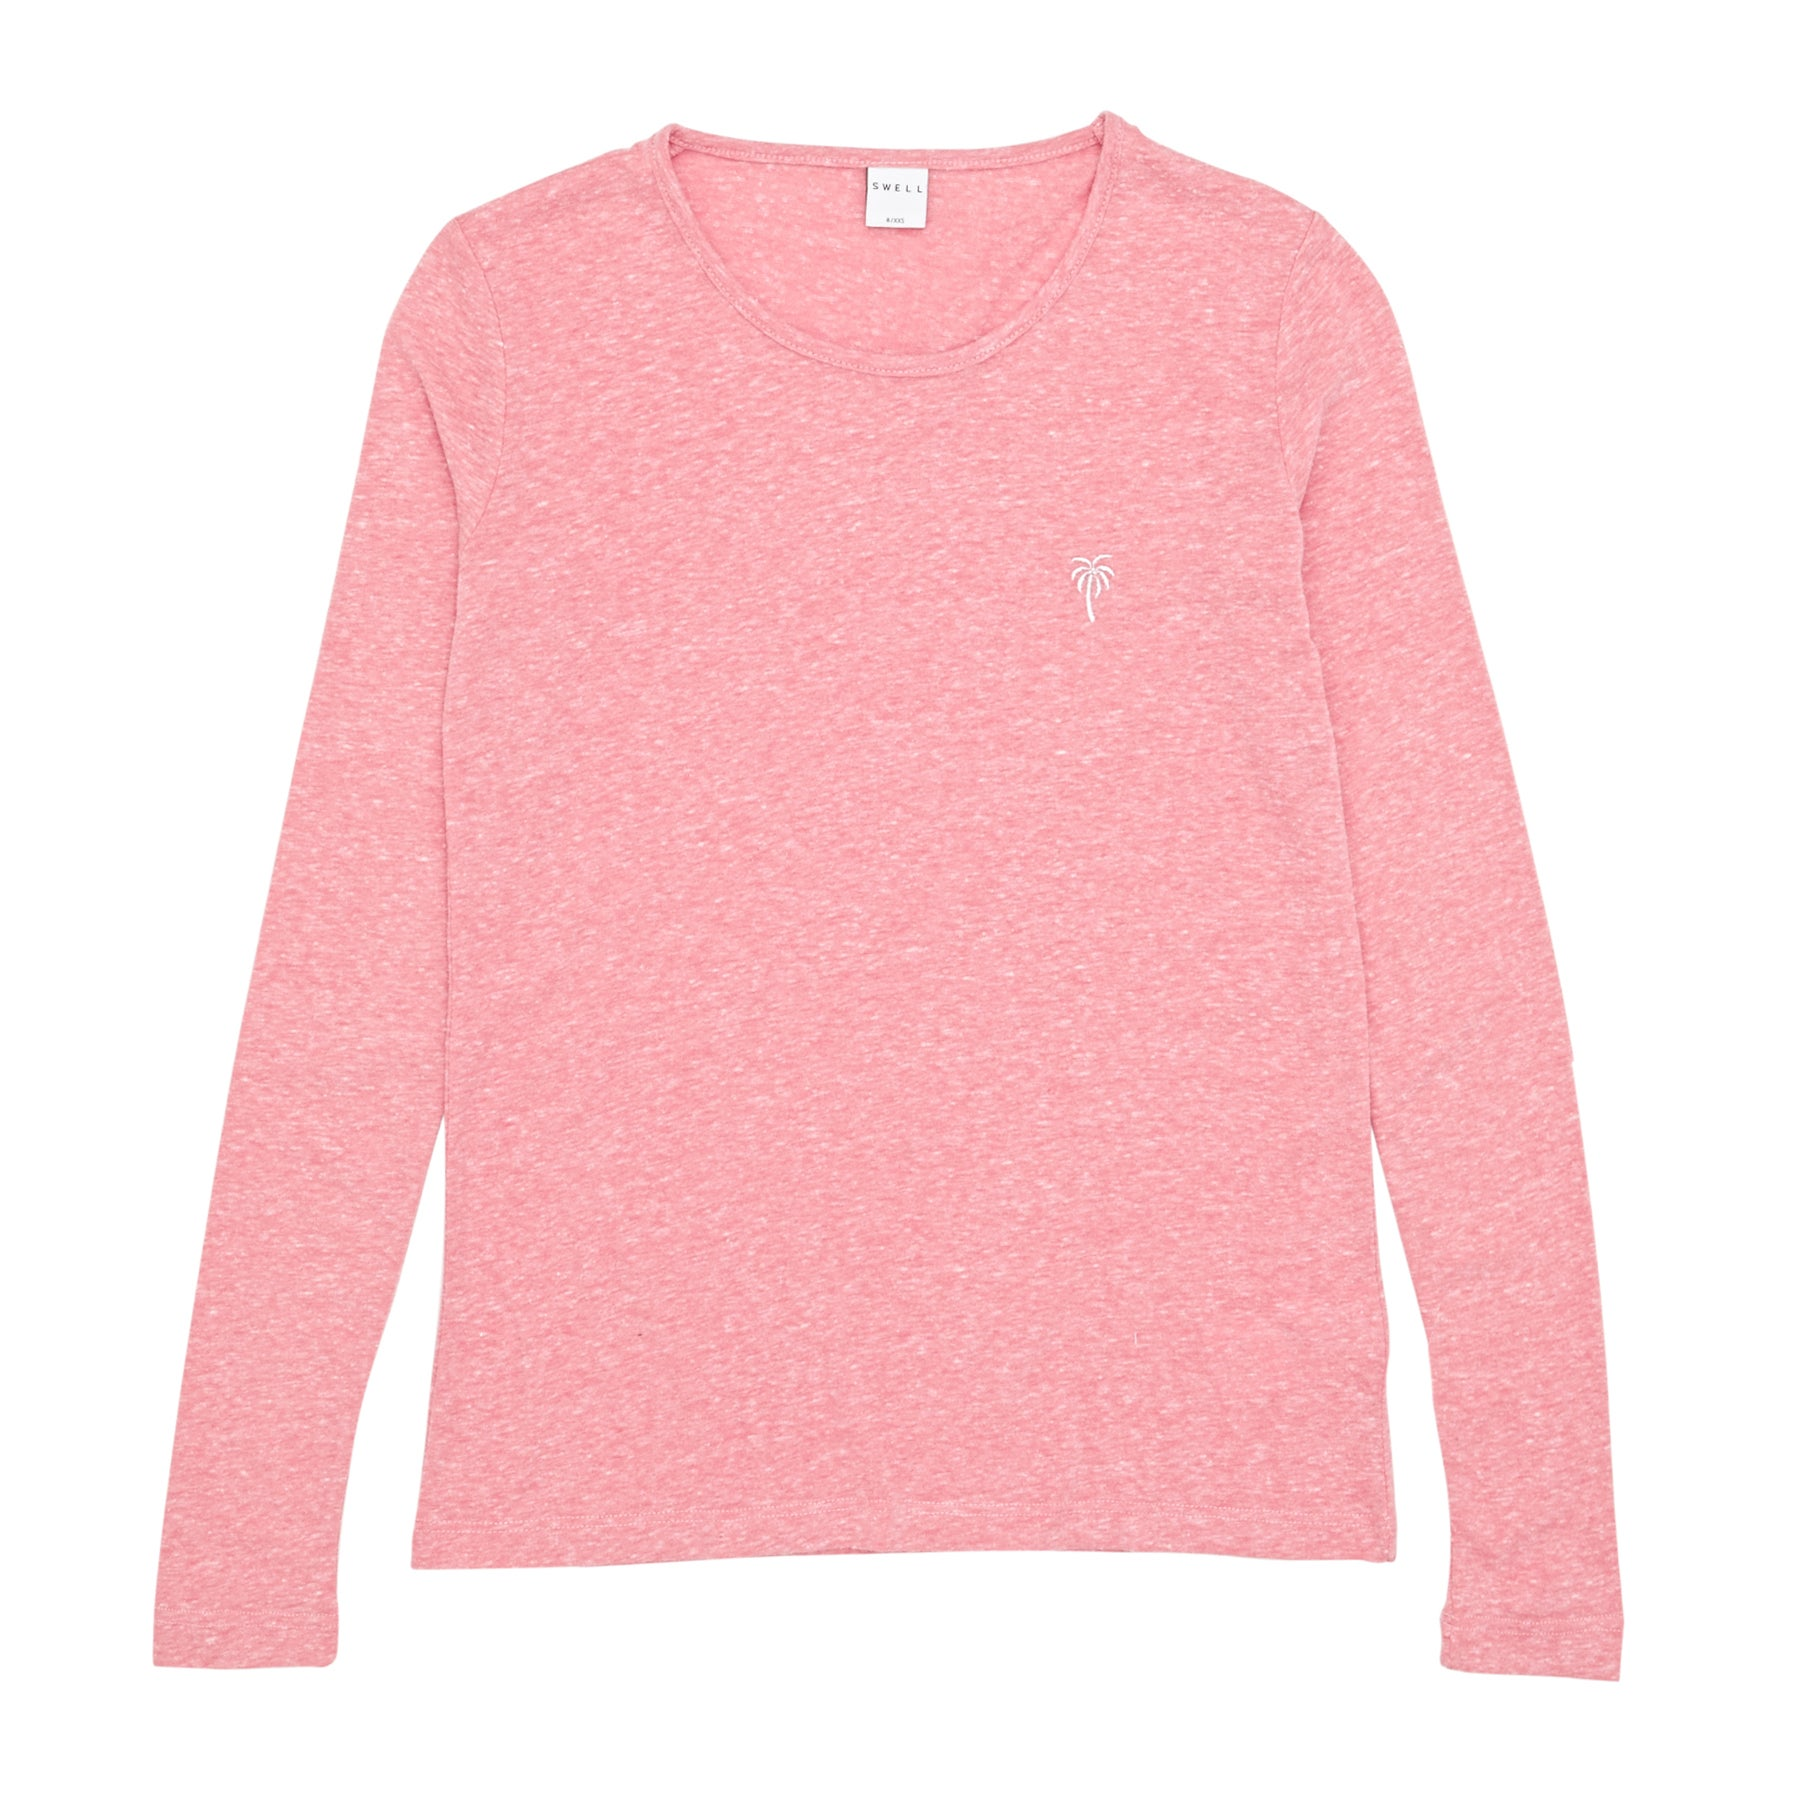 SWELL Kellie Girls Long Sleeve T-Shirt - Pink Marle